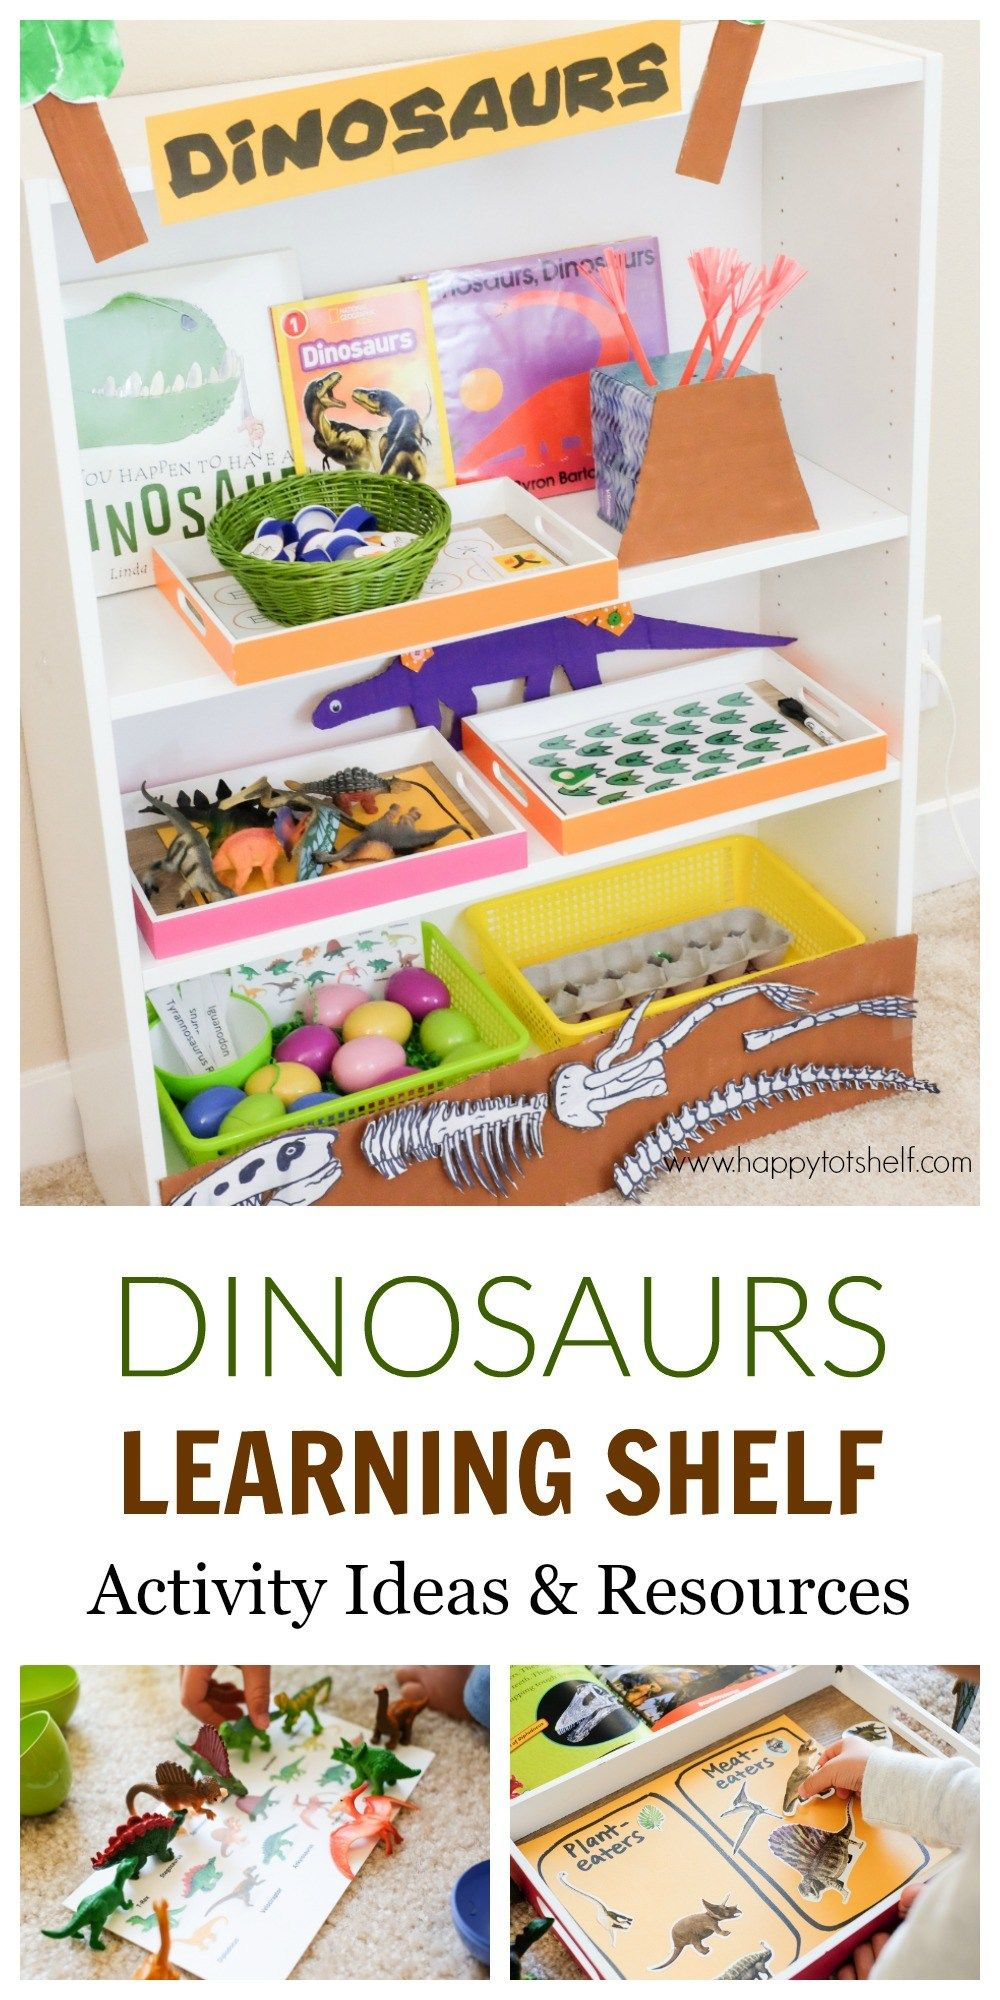 Dinosaur Theme Learning Activities and Learning Shelf images